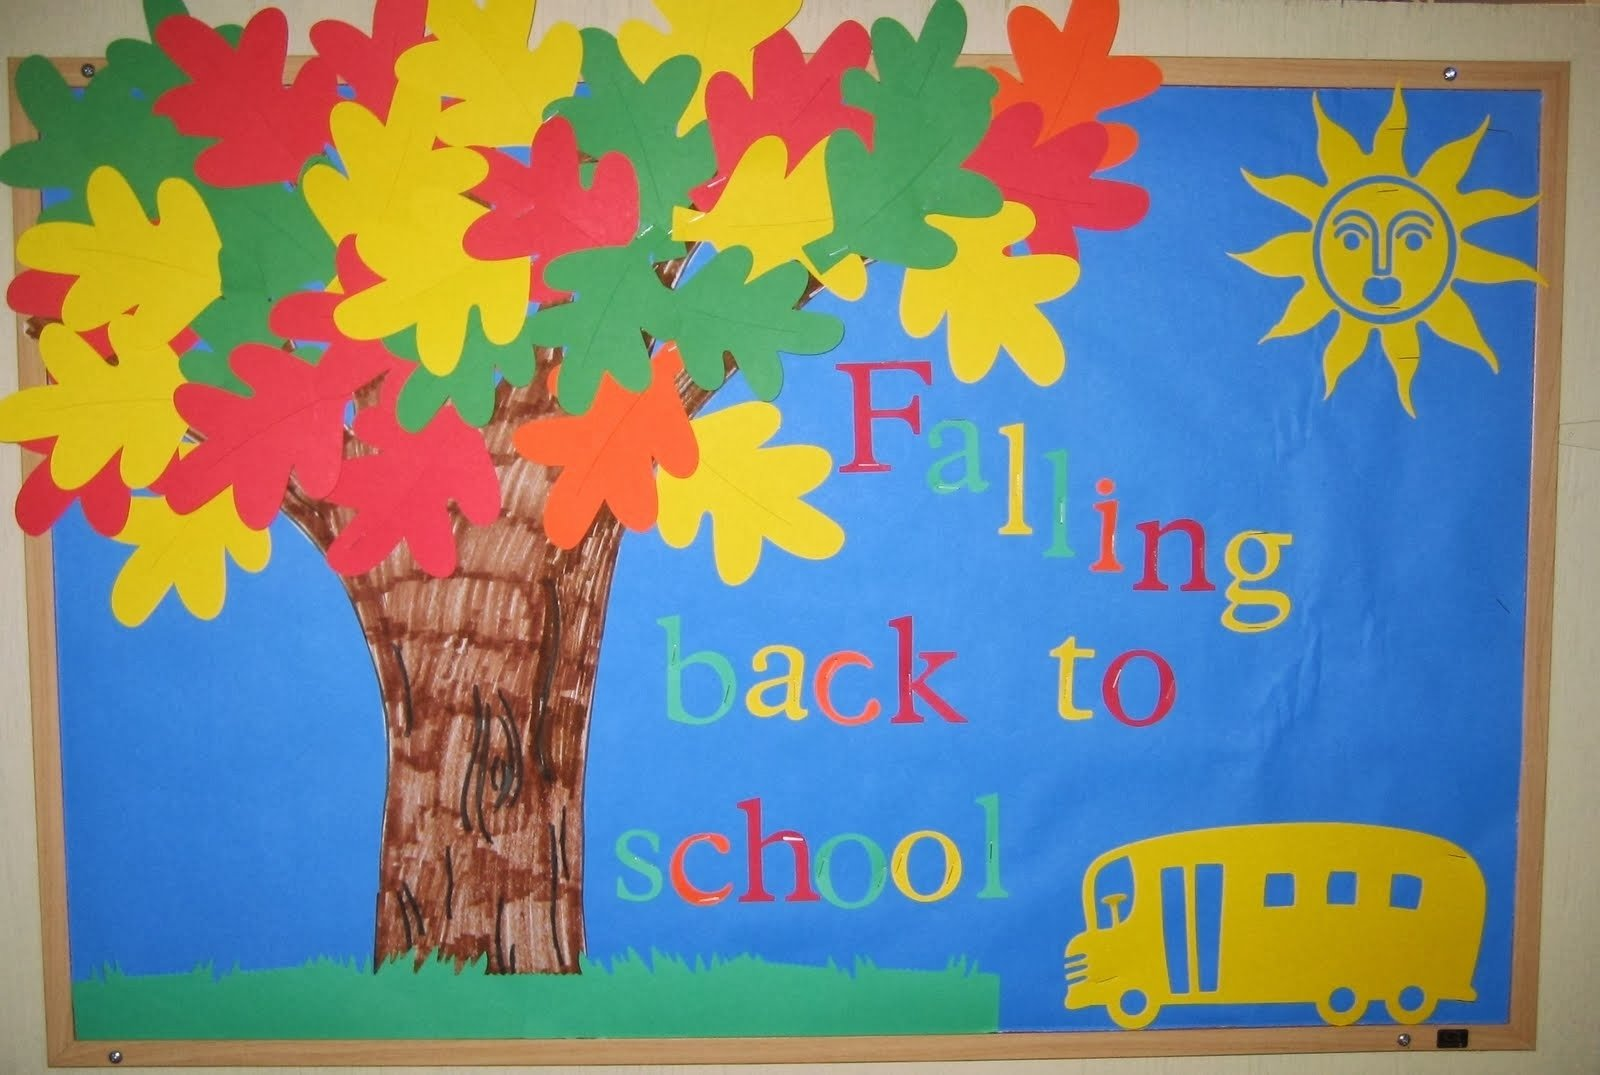 10 Famous Bulletin Board Ideas For August primary education board back to school bulletin board ideas 2 2020